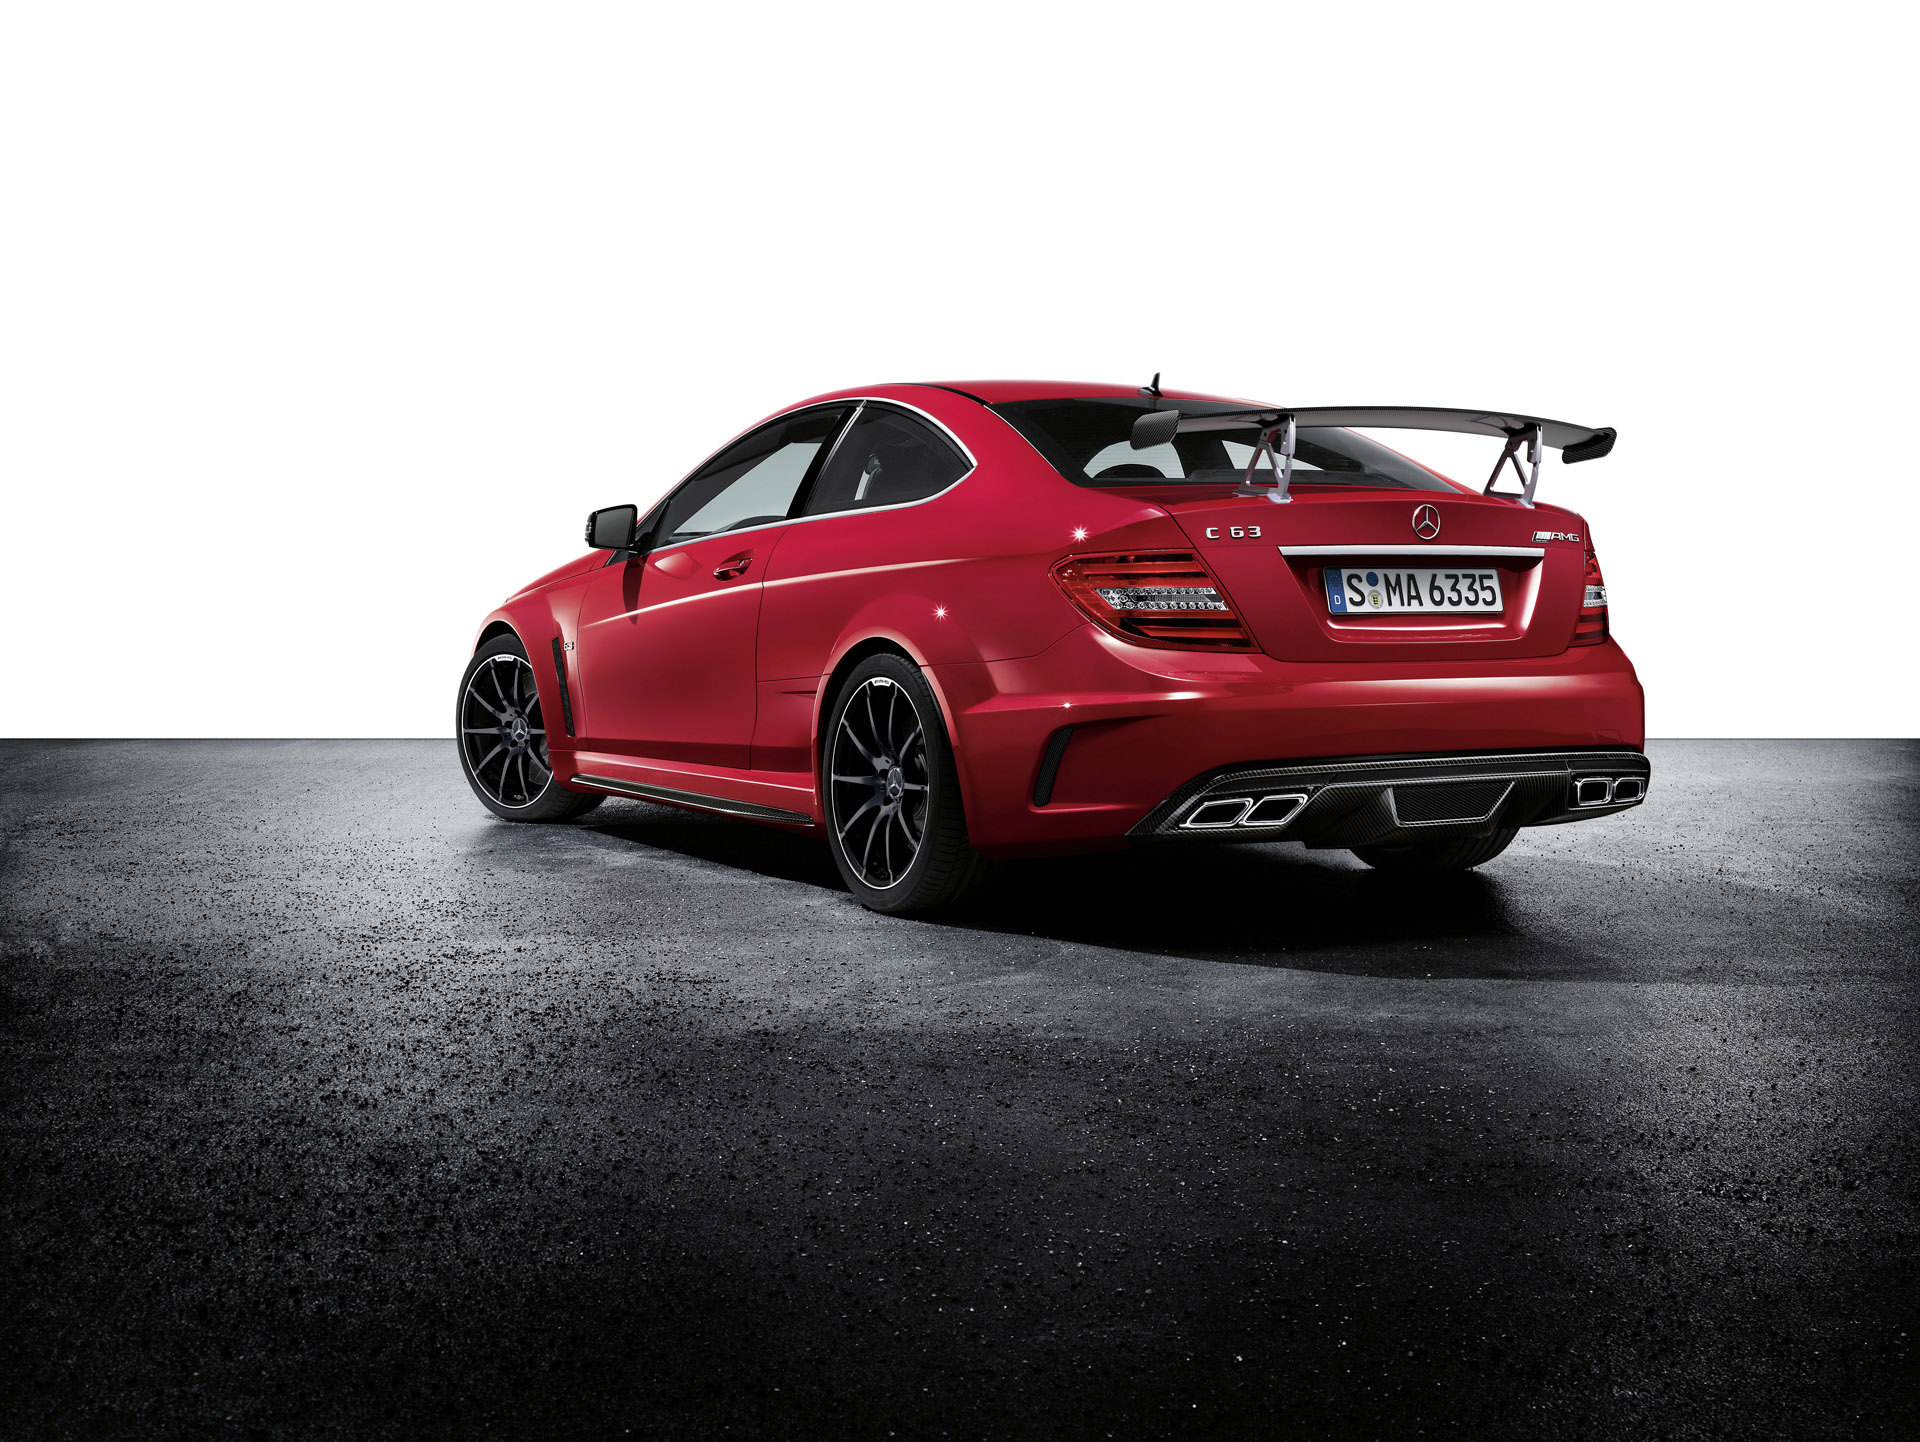 Mercedes C63 AMG Black Series is now Sold Out - ForceGT.com